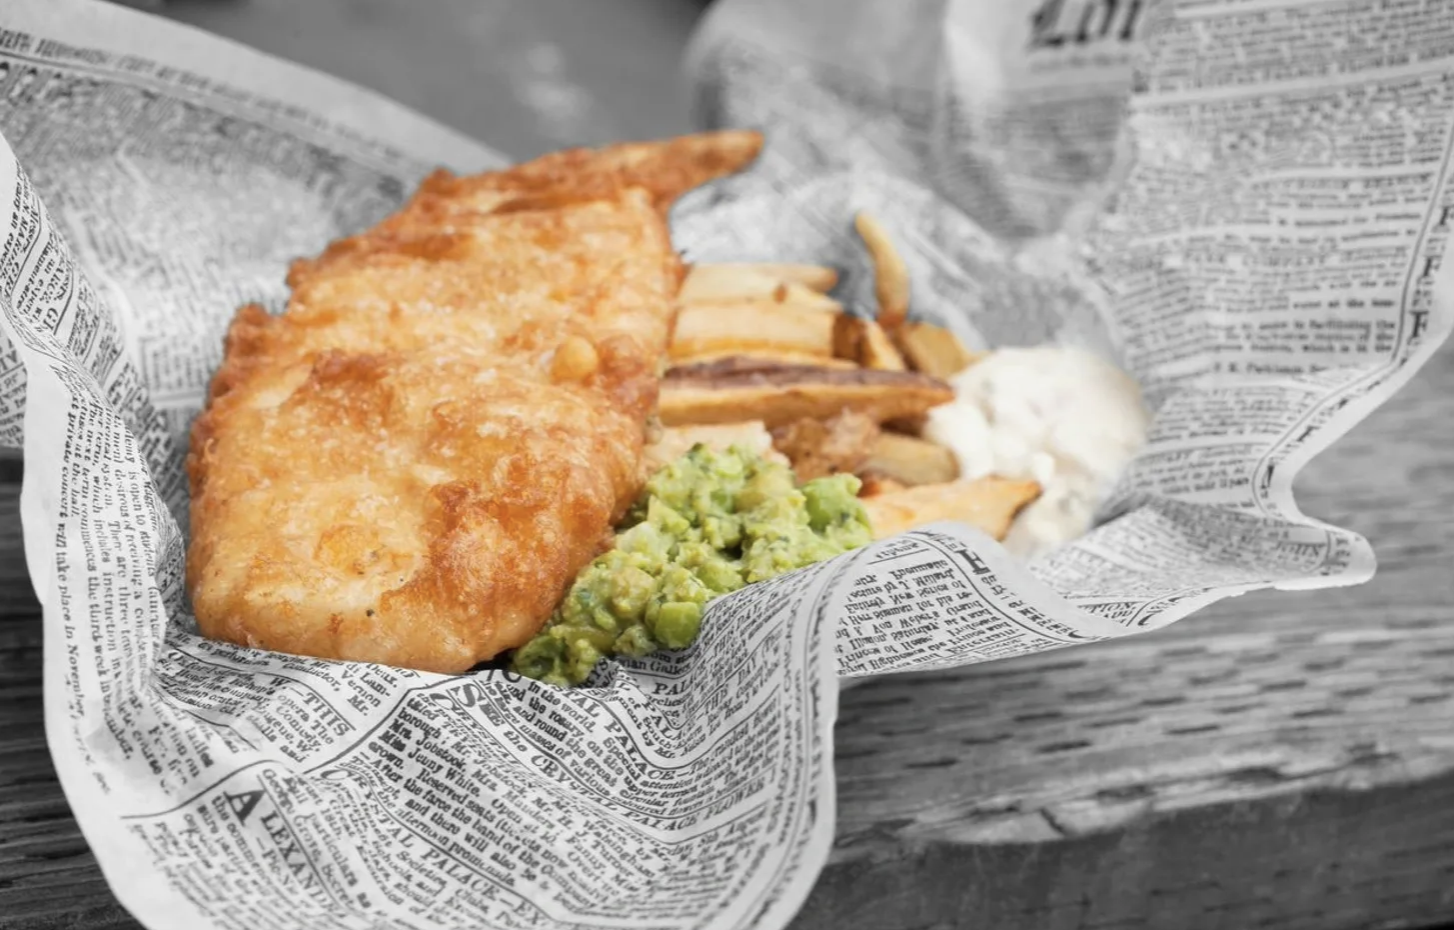 Bainbridge Island Is About to Get an Incredible Fish and Chips Spot